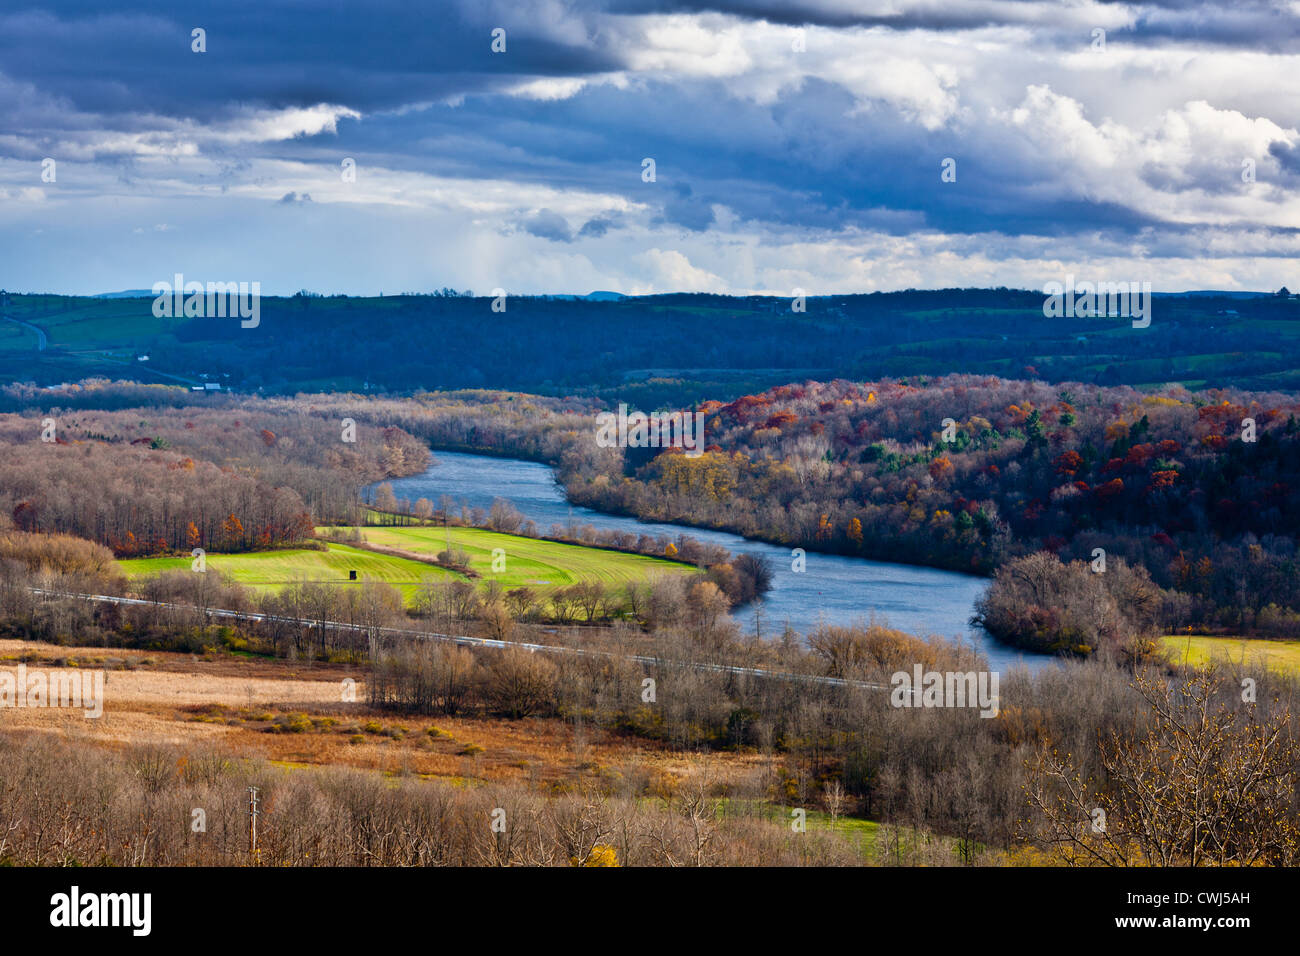 The Mohawk River winds through Mohawk Valley near Little Falls, New York - Stock Image